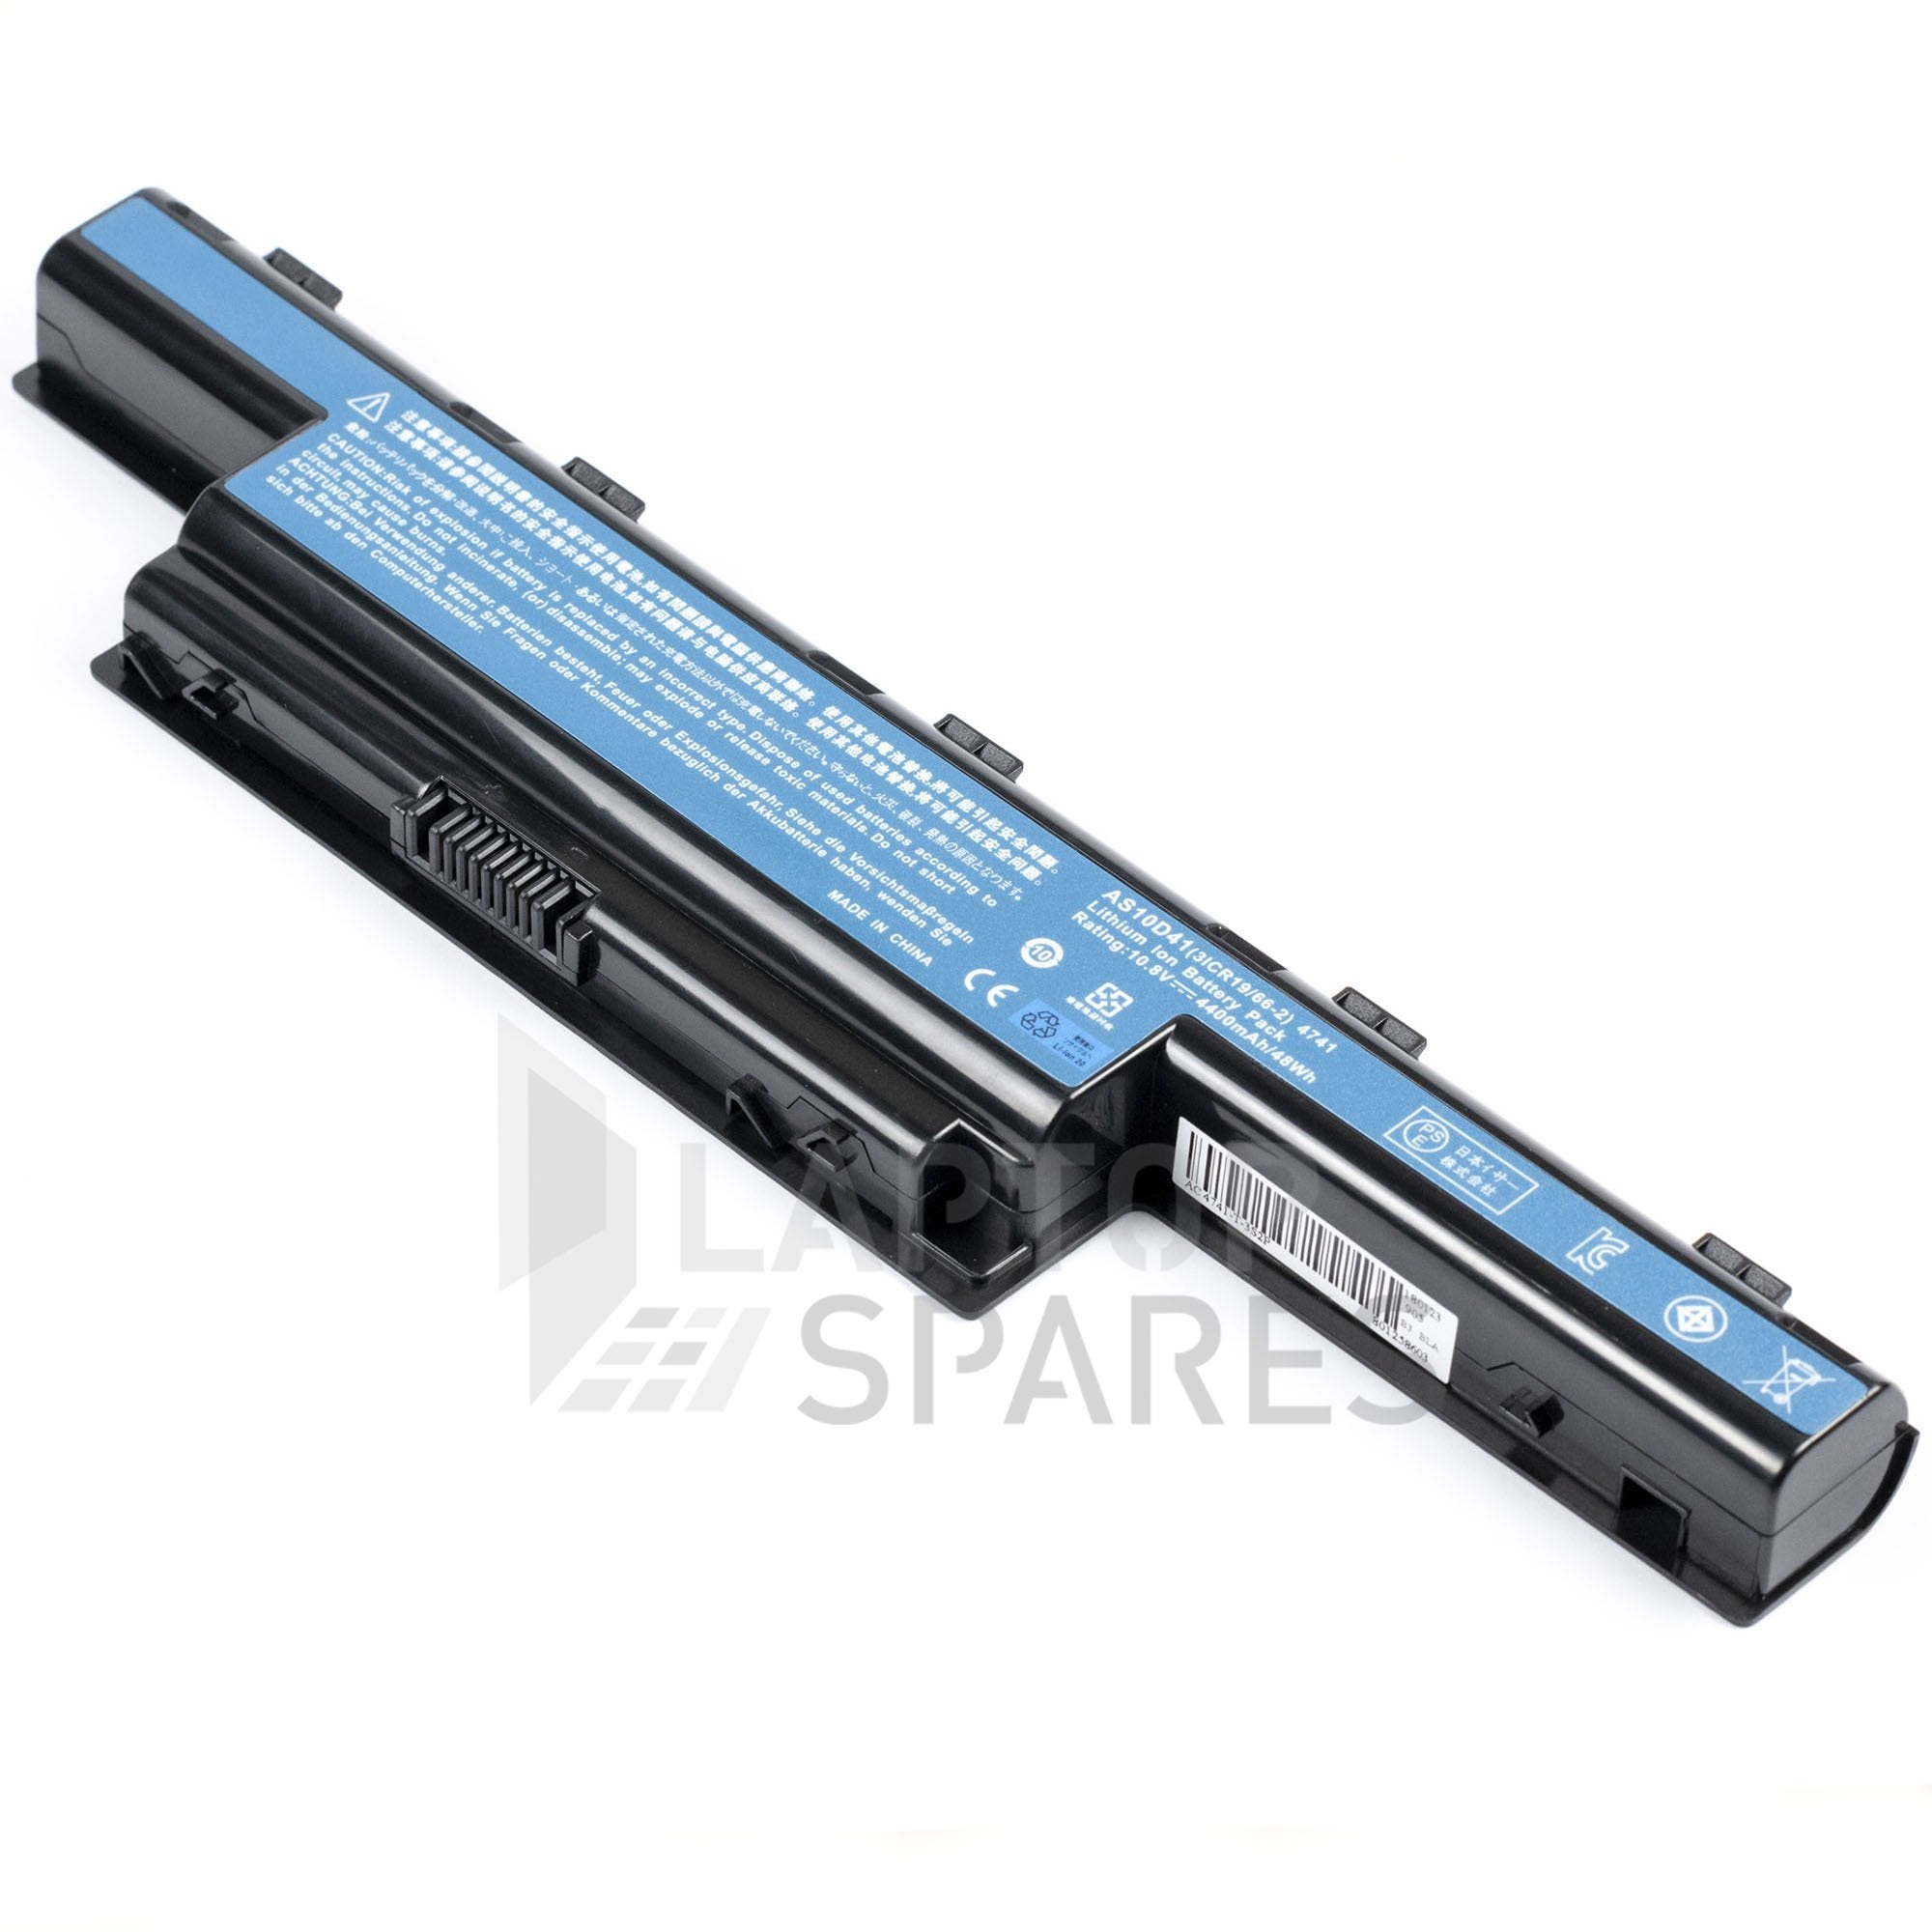 Acer Aspire 5736Z 5741G 5742G 4400mAh 6 Cell Battery